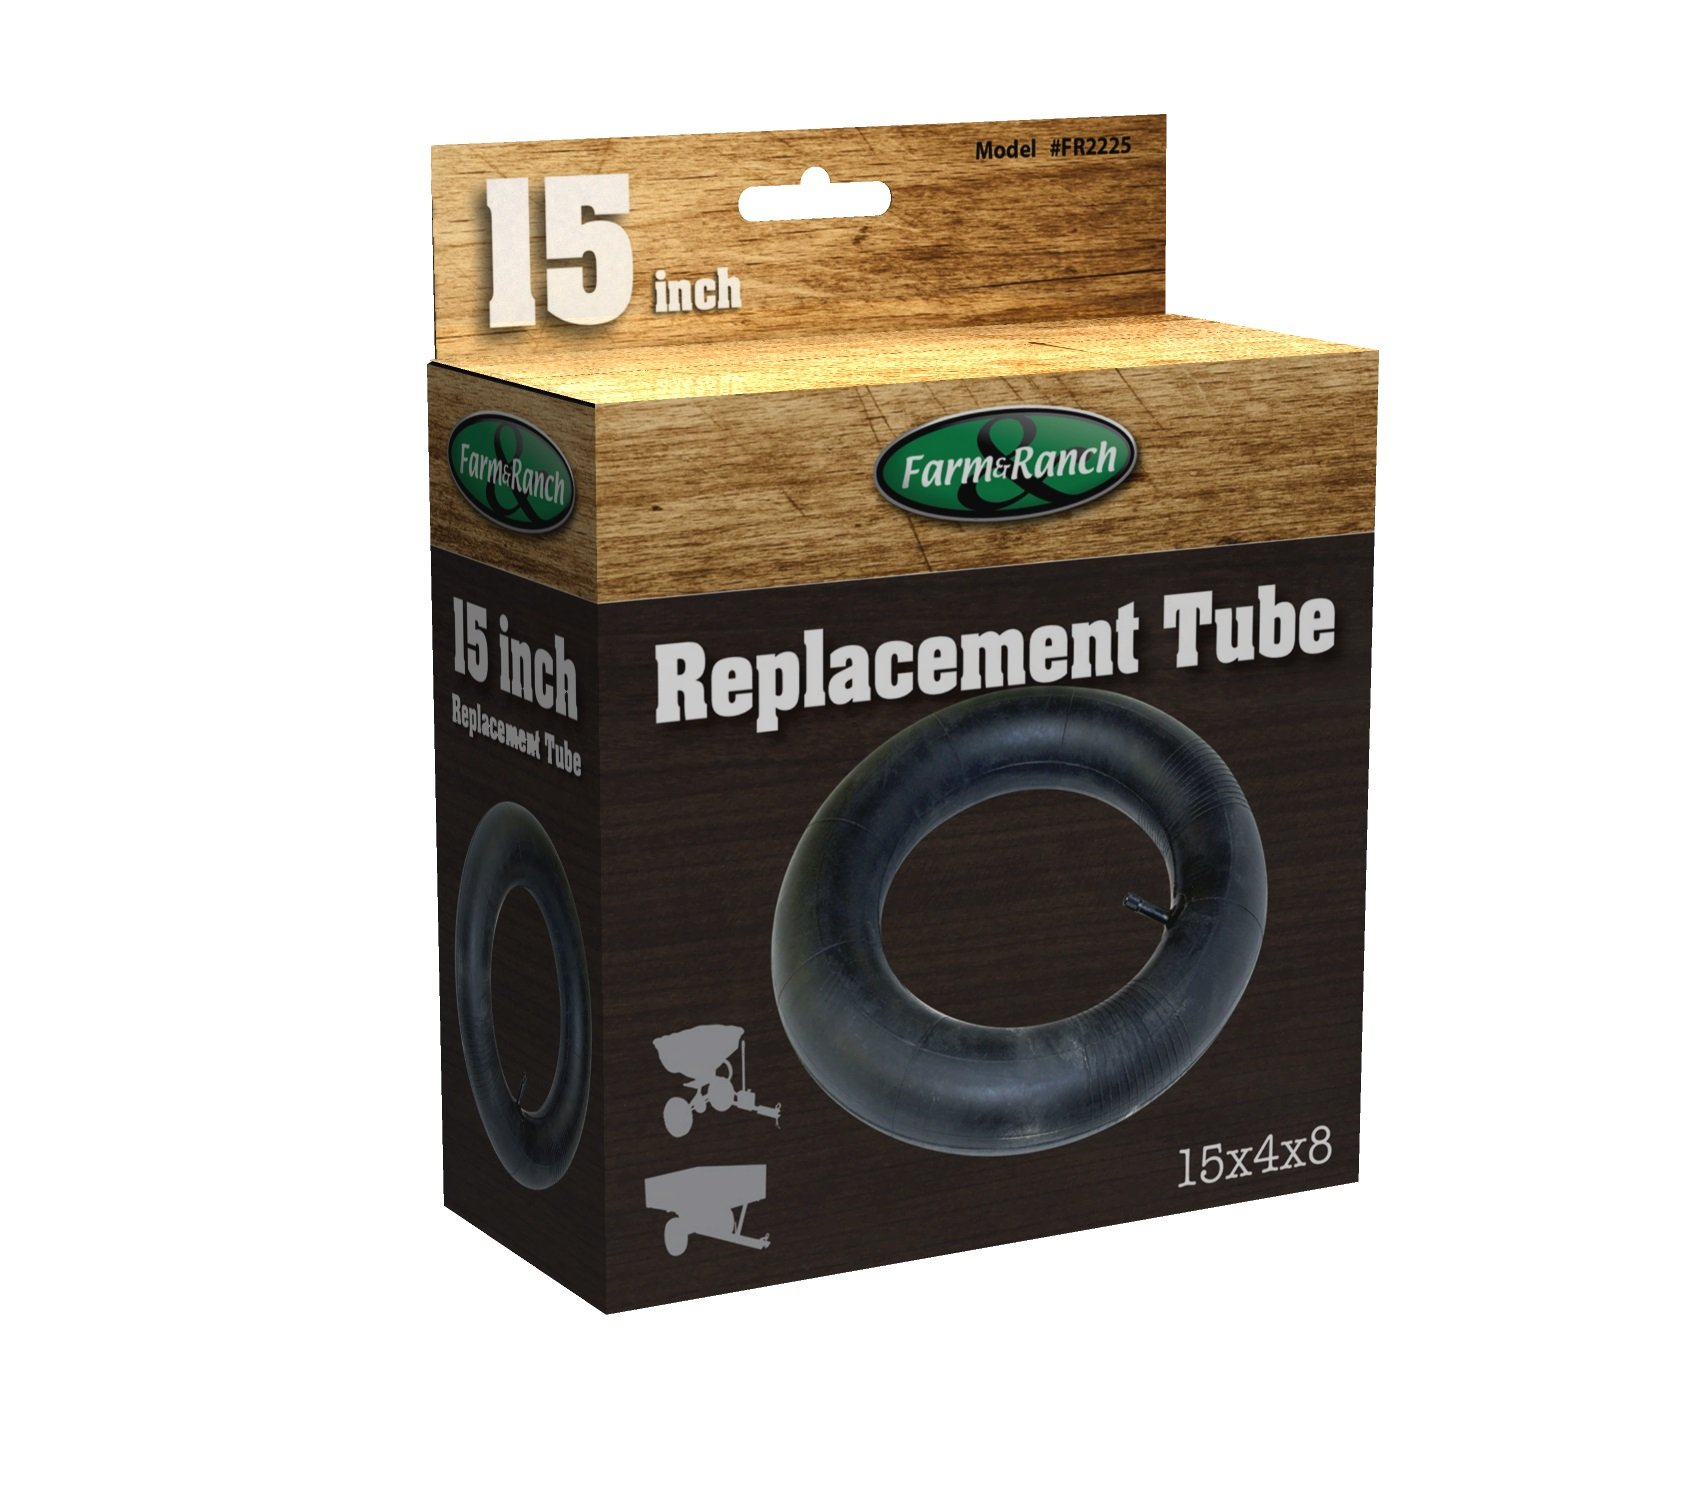 Tricam Farm and Ranch FR2225 Replacement Tire Tube for Wheelbarrows and Utility Carts, 15-Inch